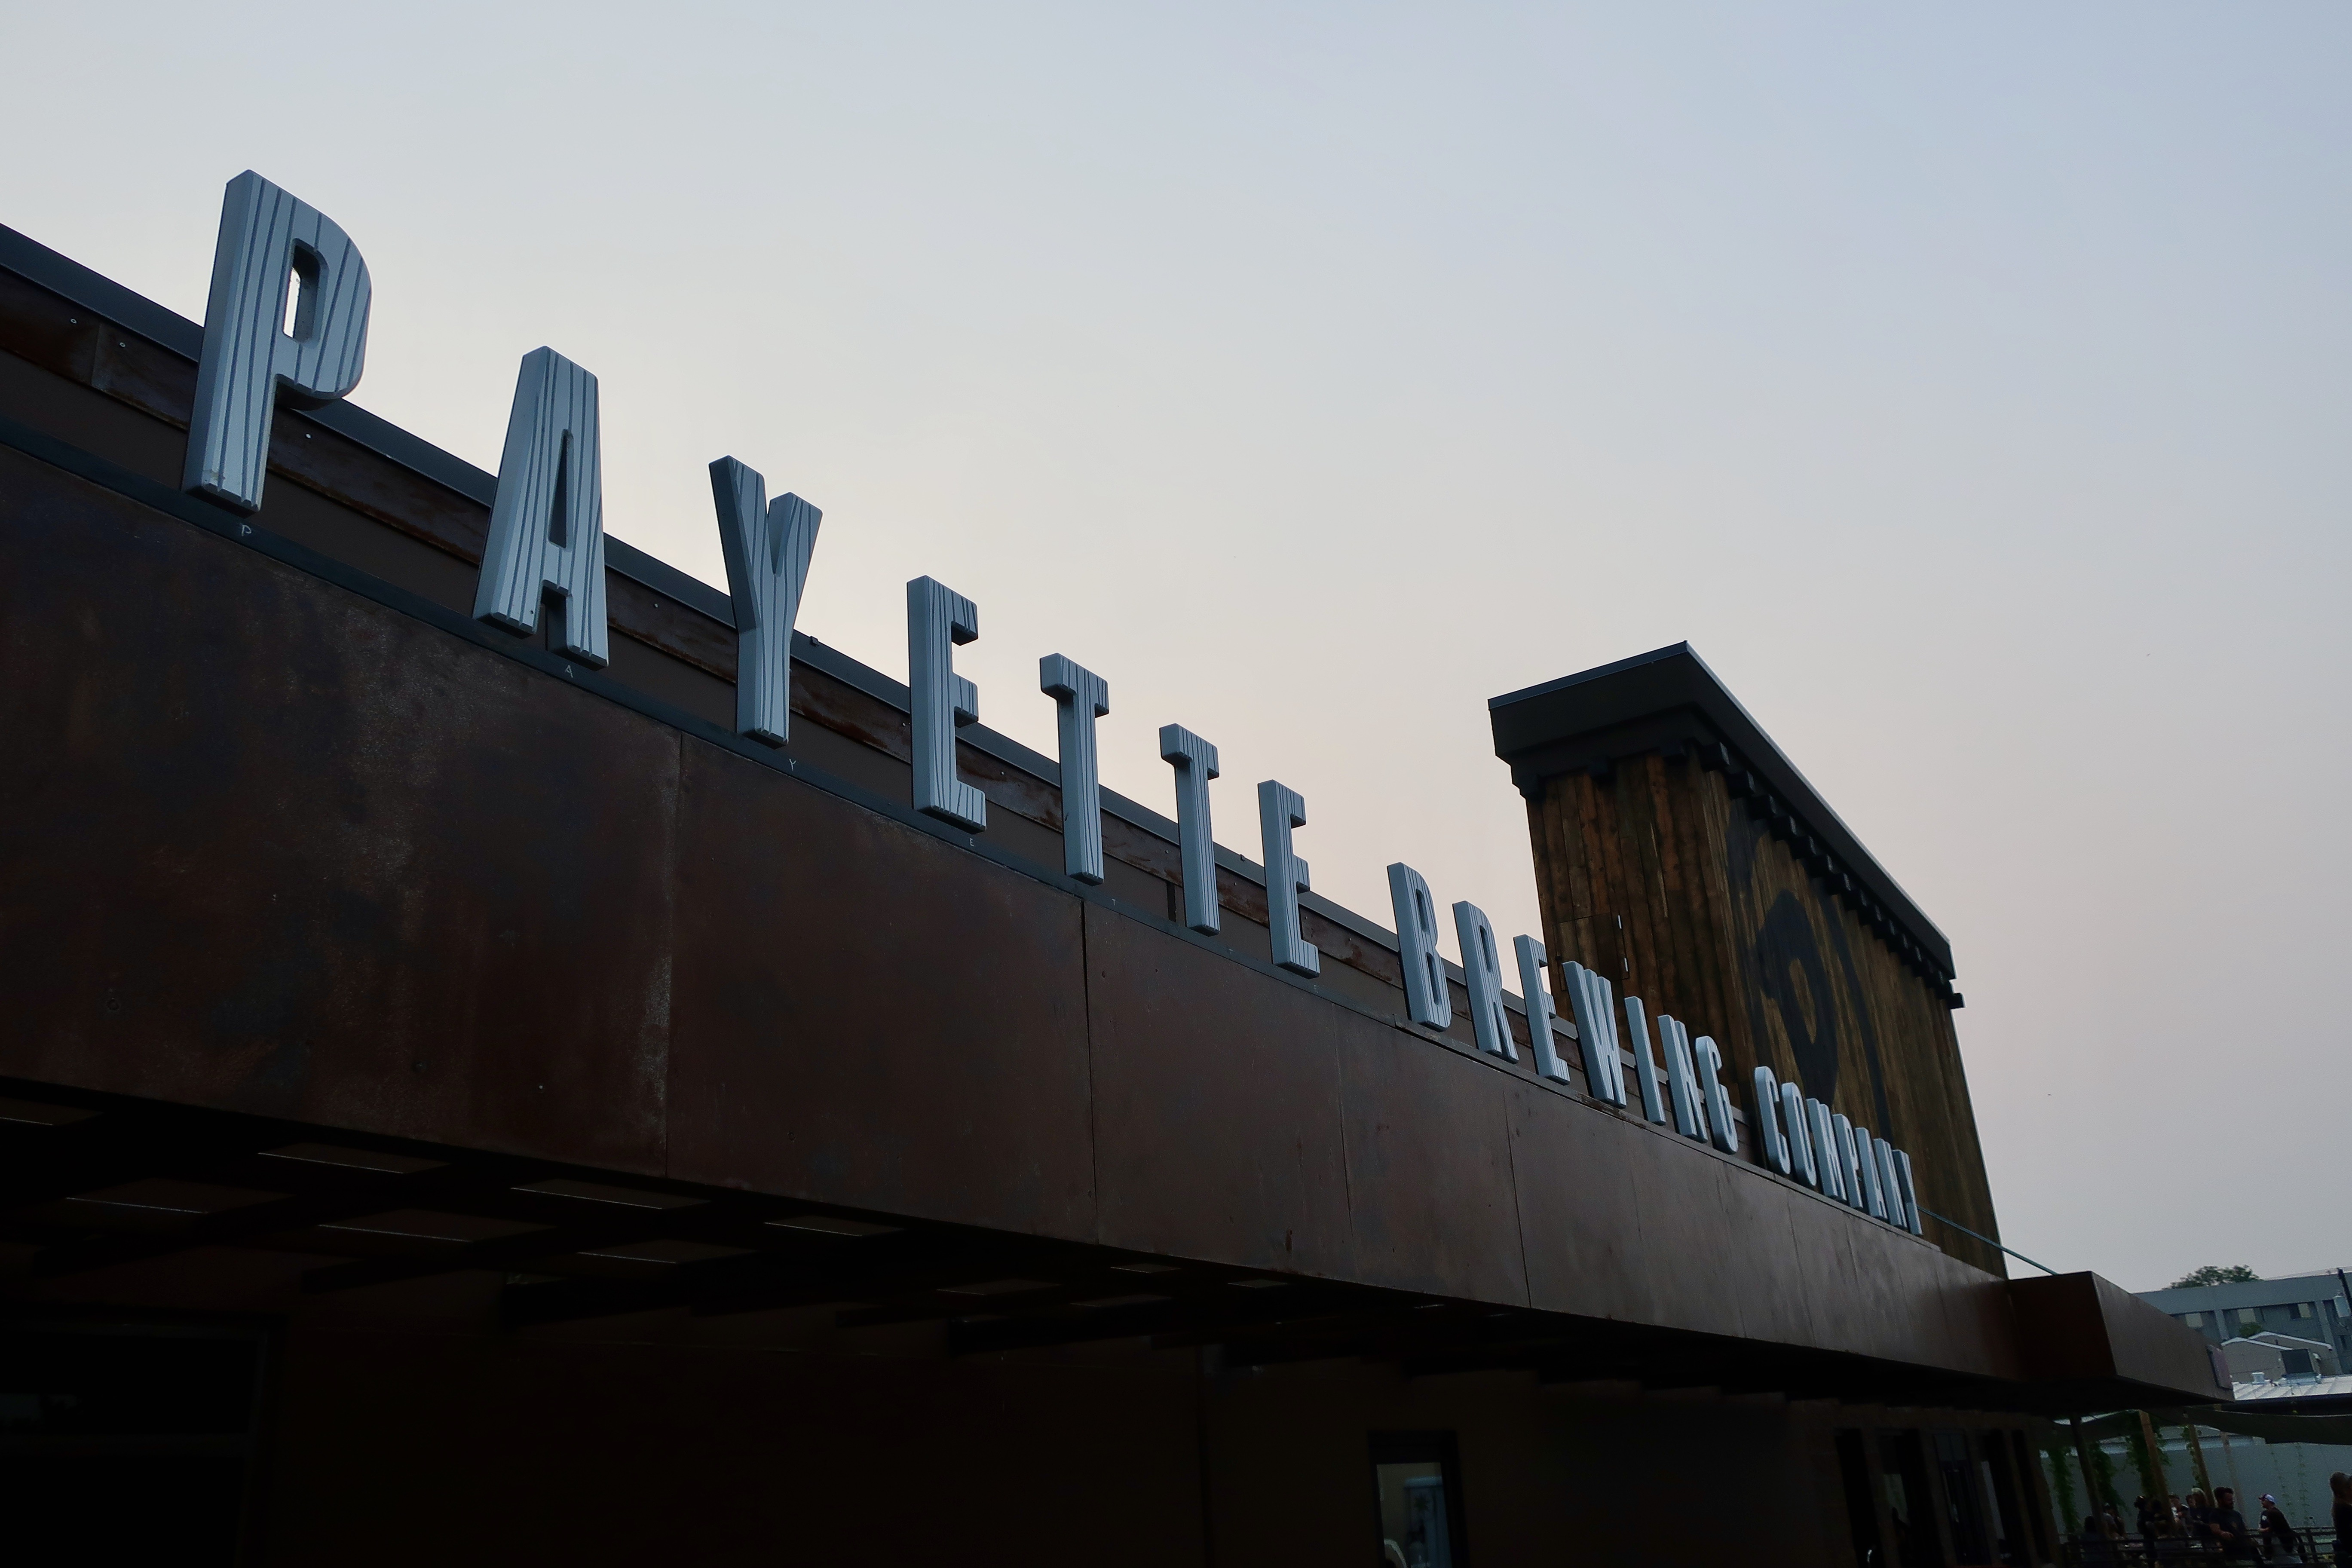 Payette Brewing located in Boise, Idaho.